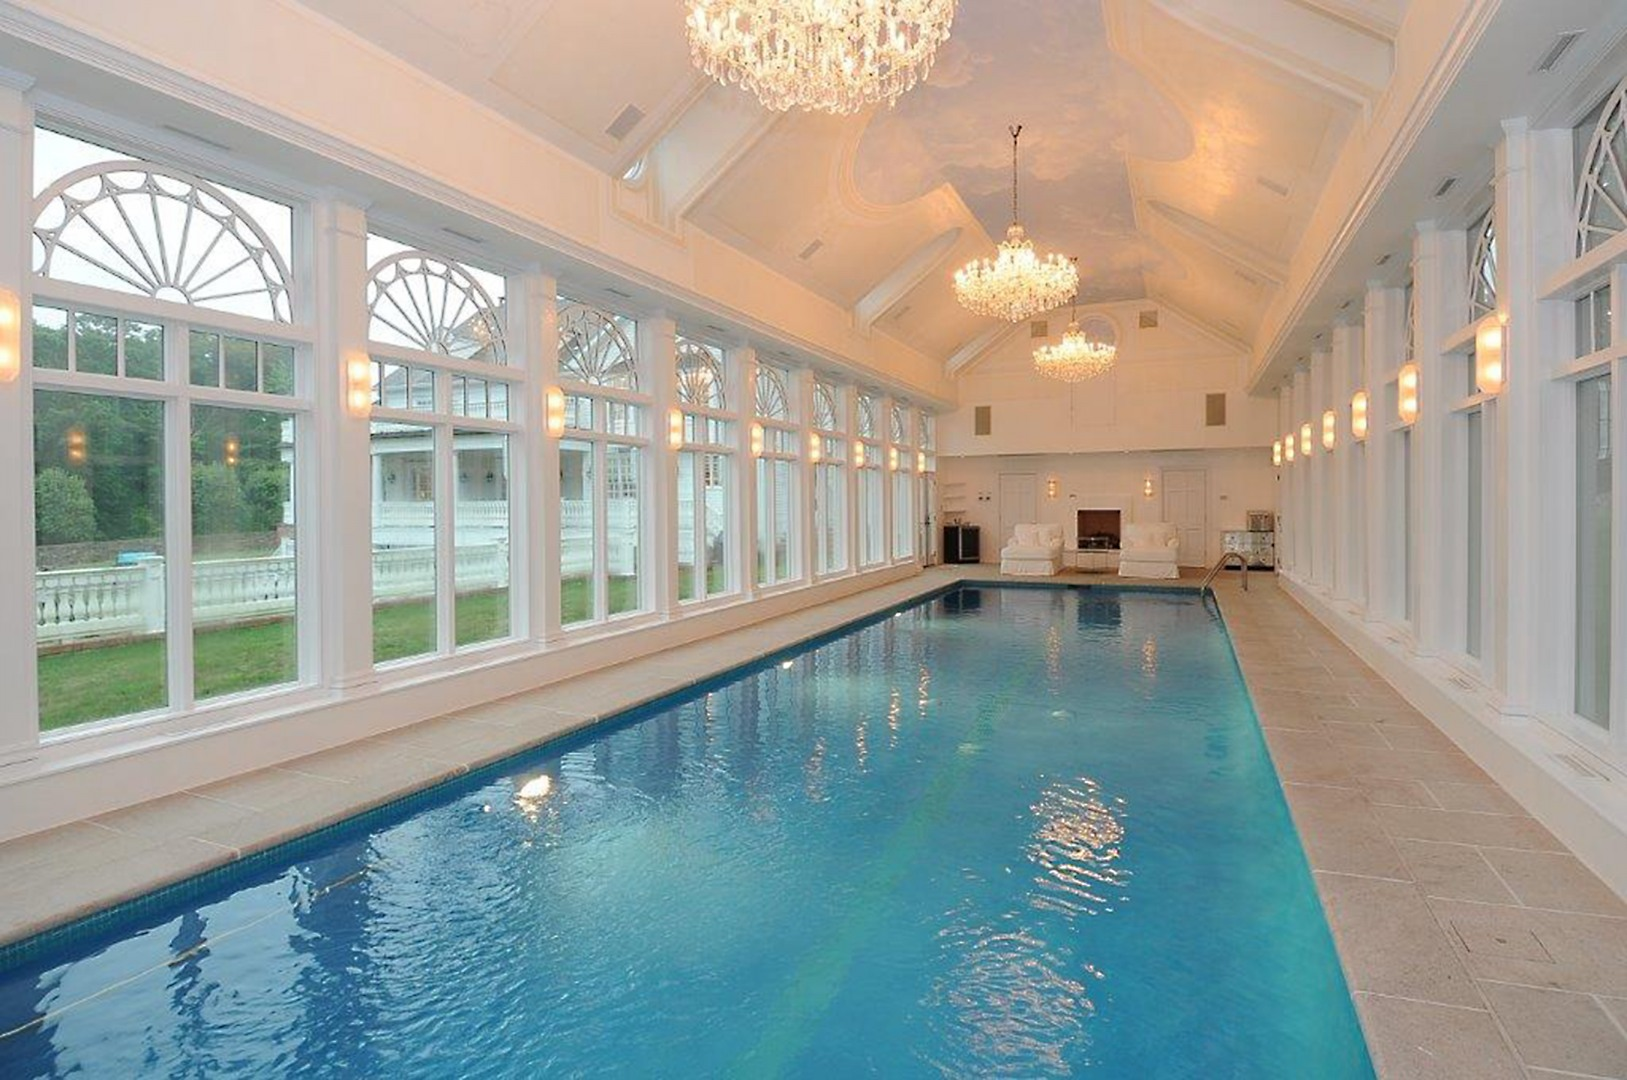 Dive into winter 5 dreamy indoor pools william pitt for Garden oaks pool